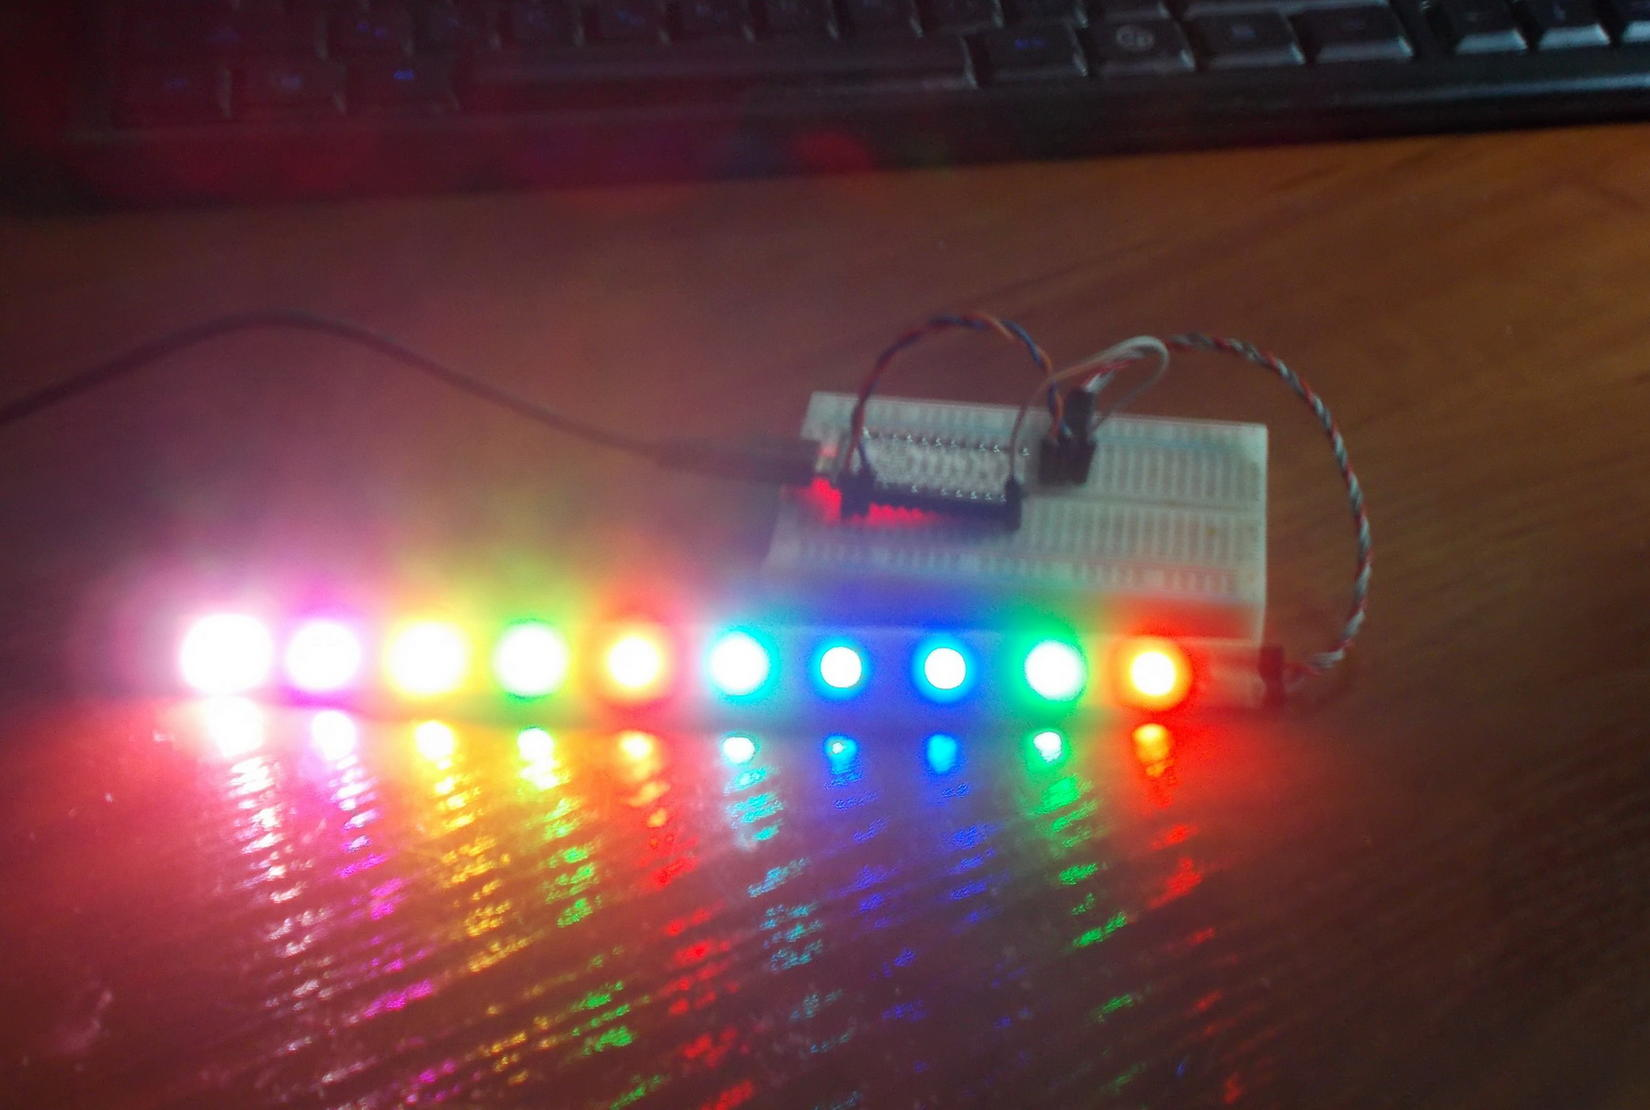 Mmjoy Mmjoy2 Build Your Own Usb Controller Simhq Forums Mouse Wiring Diagram Also 2016 Mylink Radio Socket On Rgb Led Strip Ws2811 Each Have Individual Digital Address To Set Any Color 3 Wire Connection Power Ground And Control